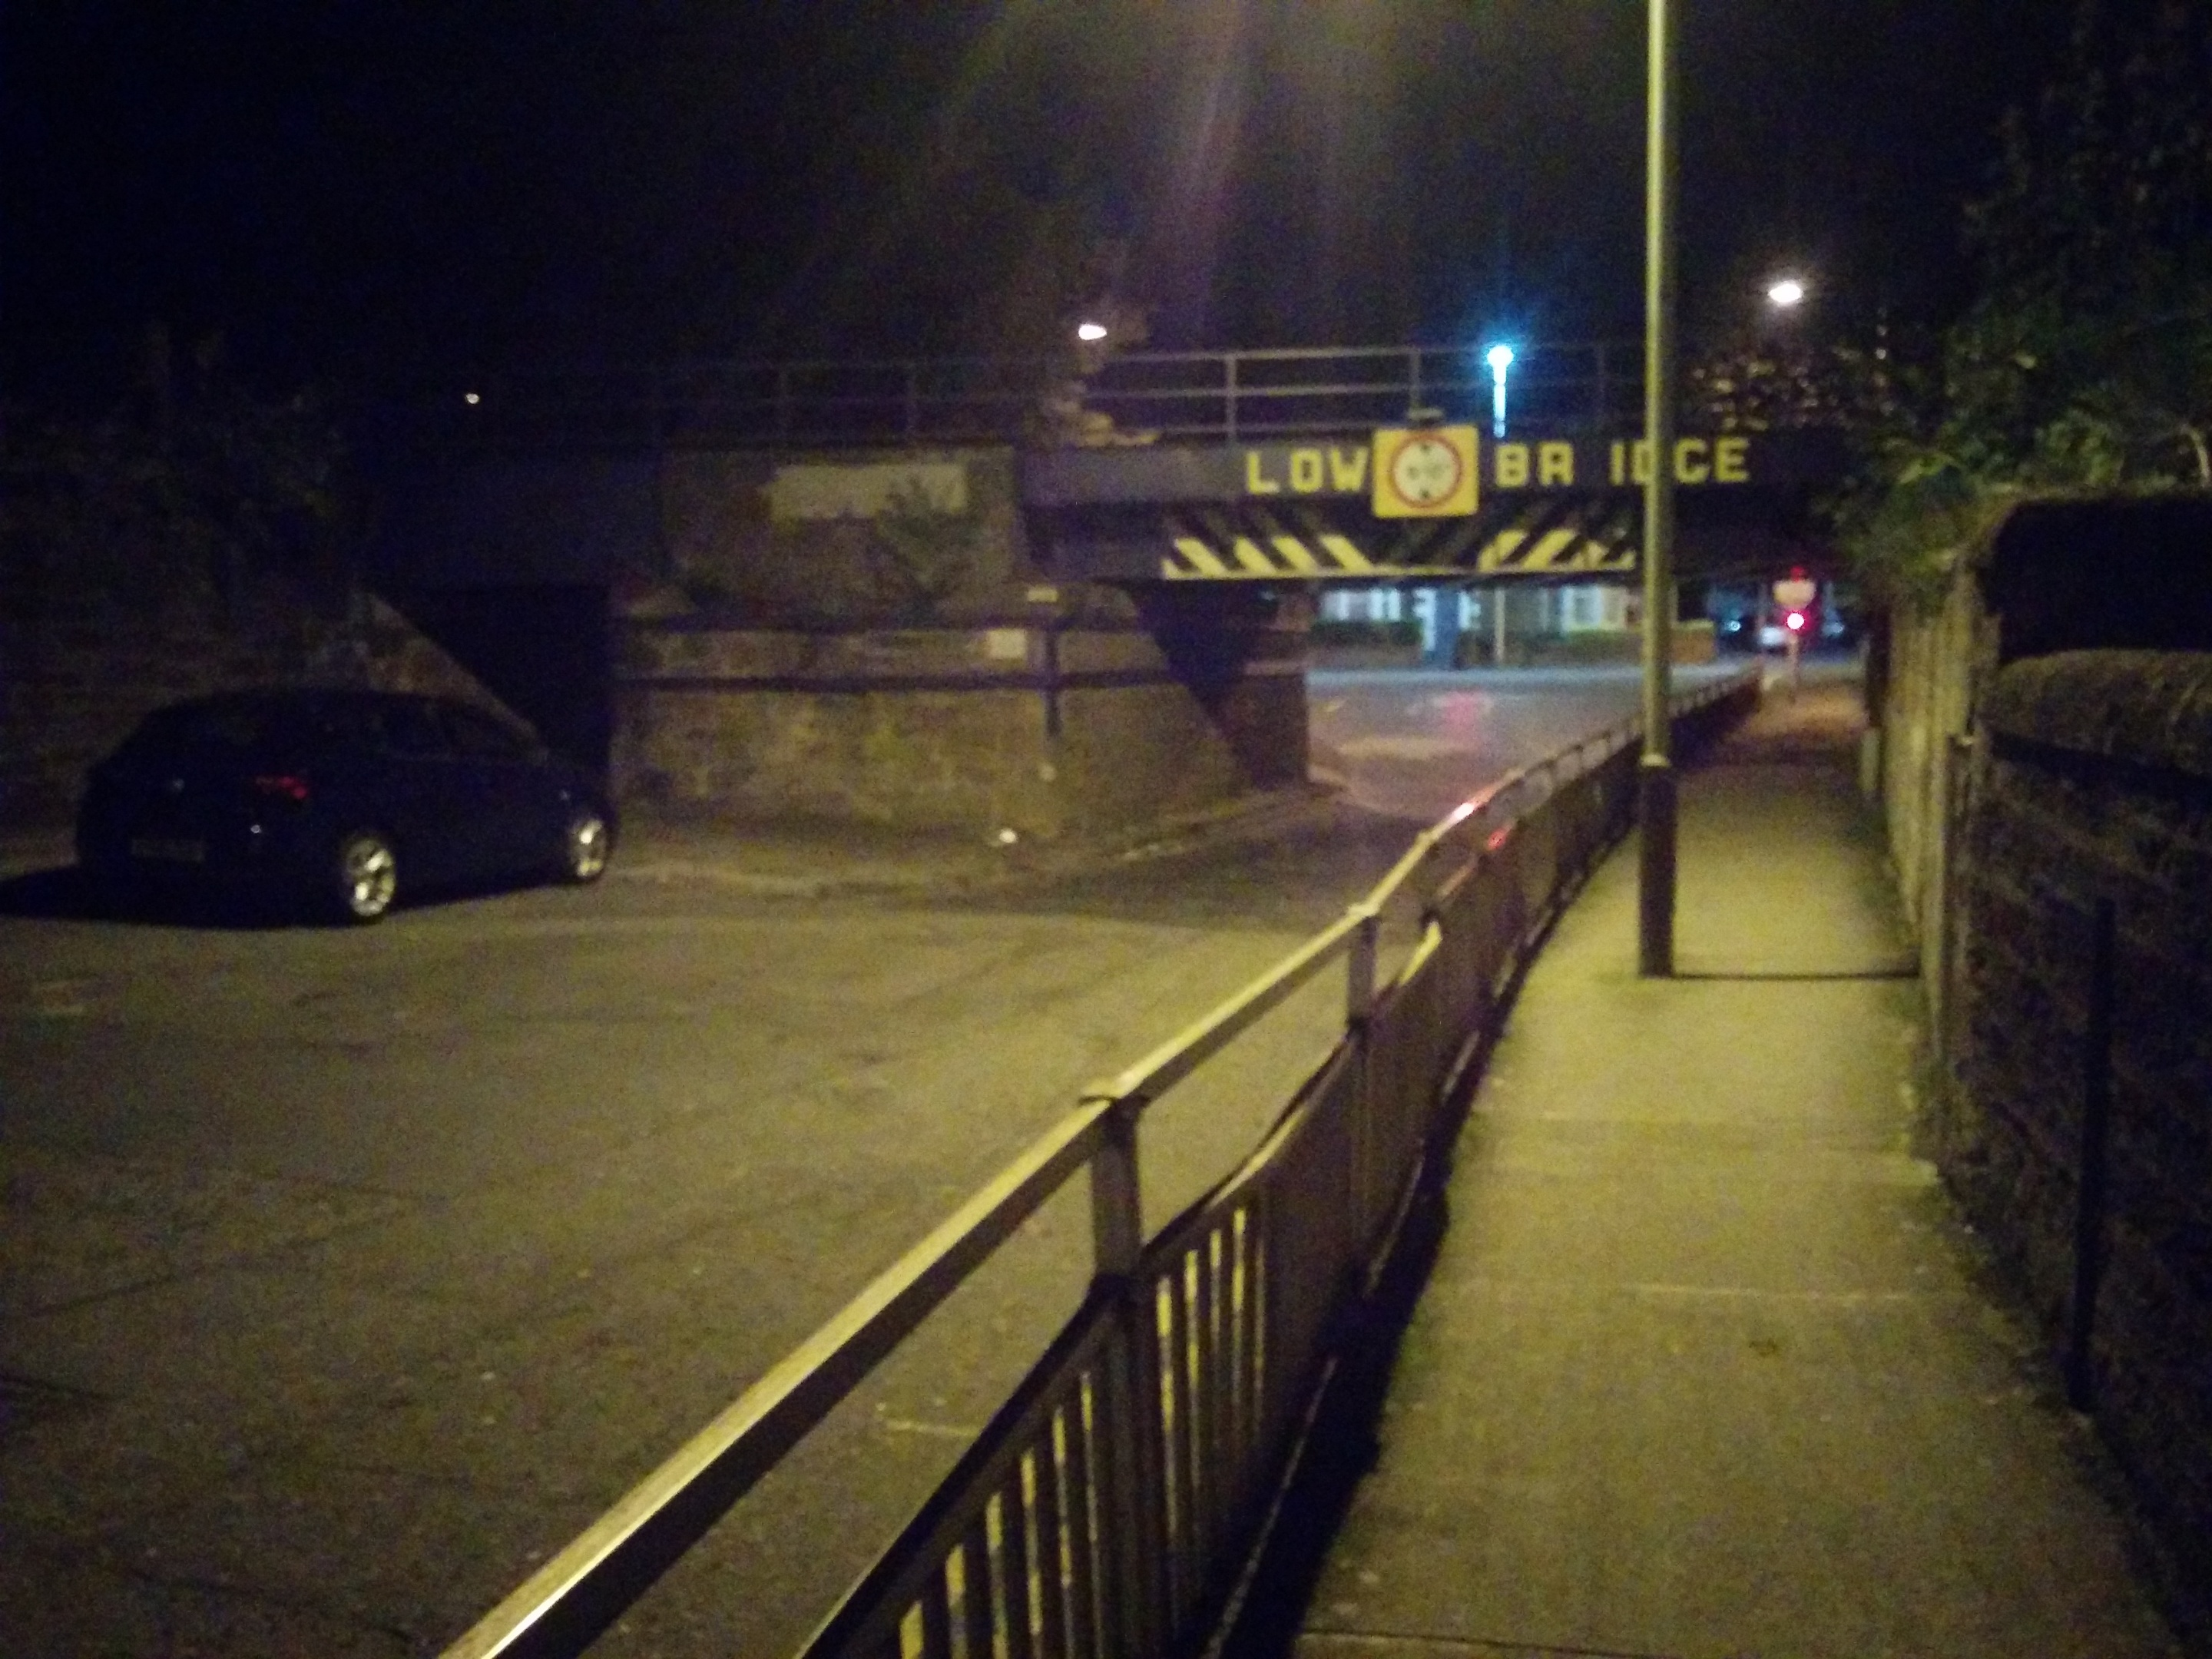 The scene of the accident on Monday evening.